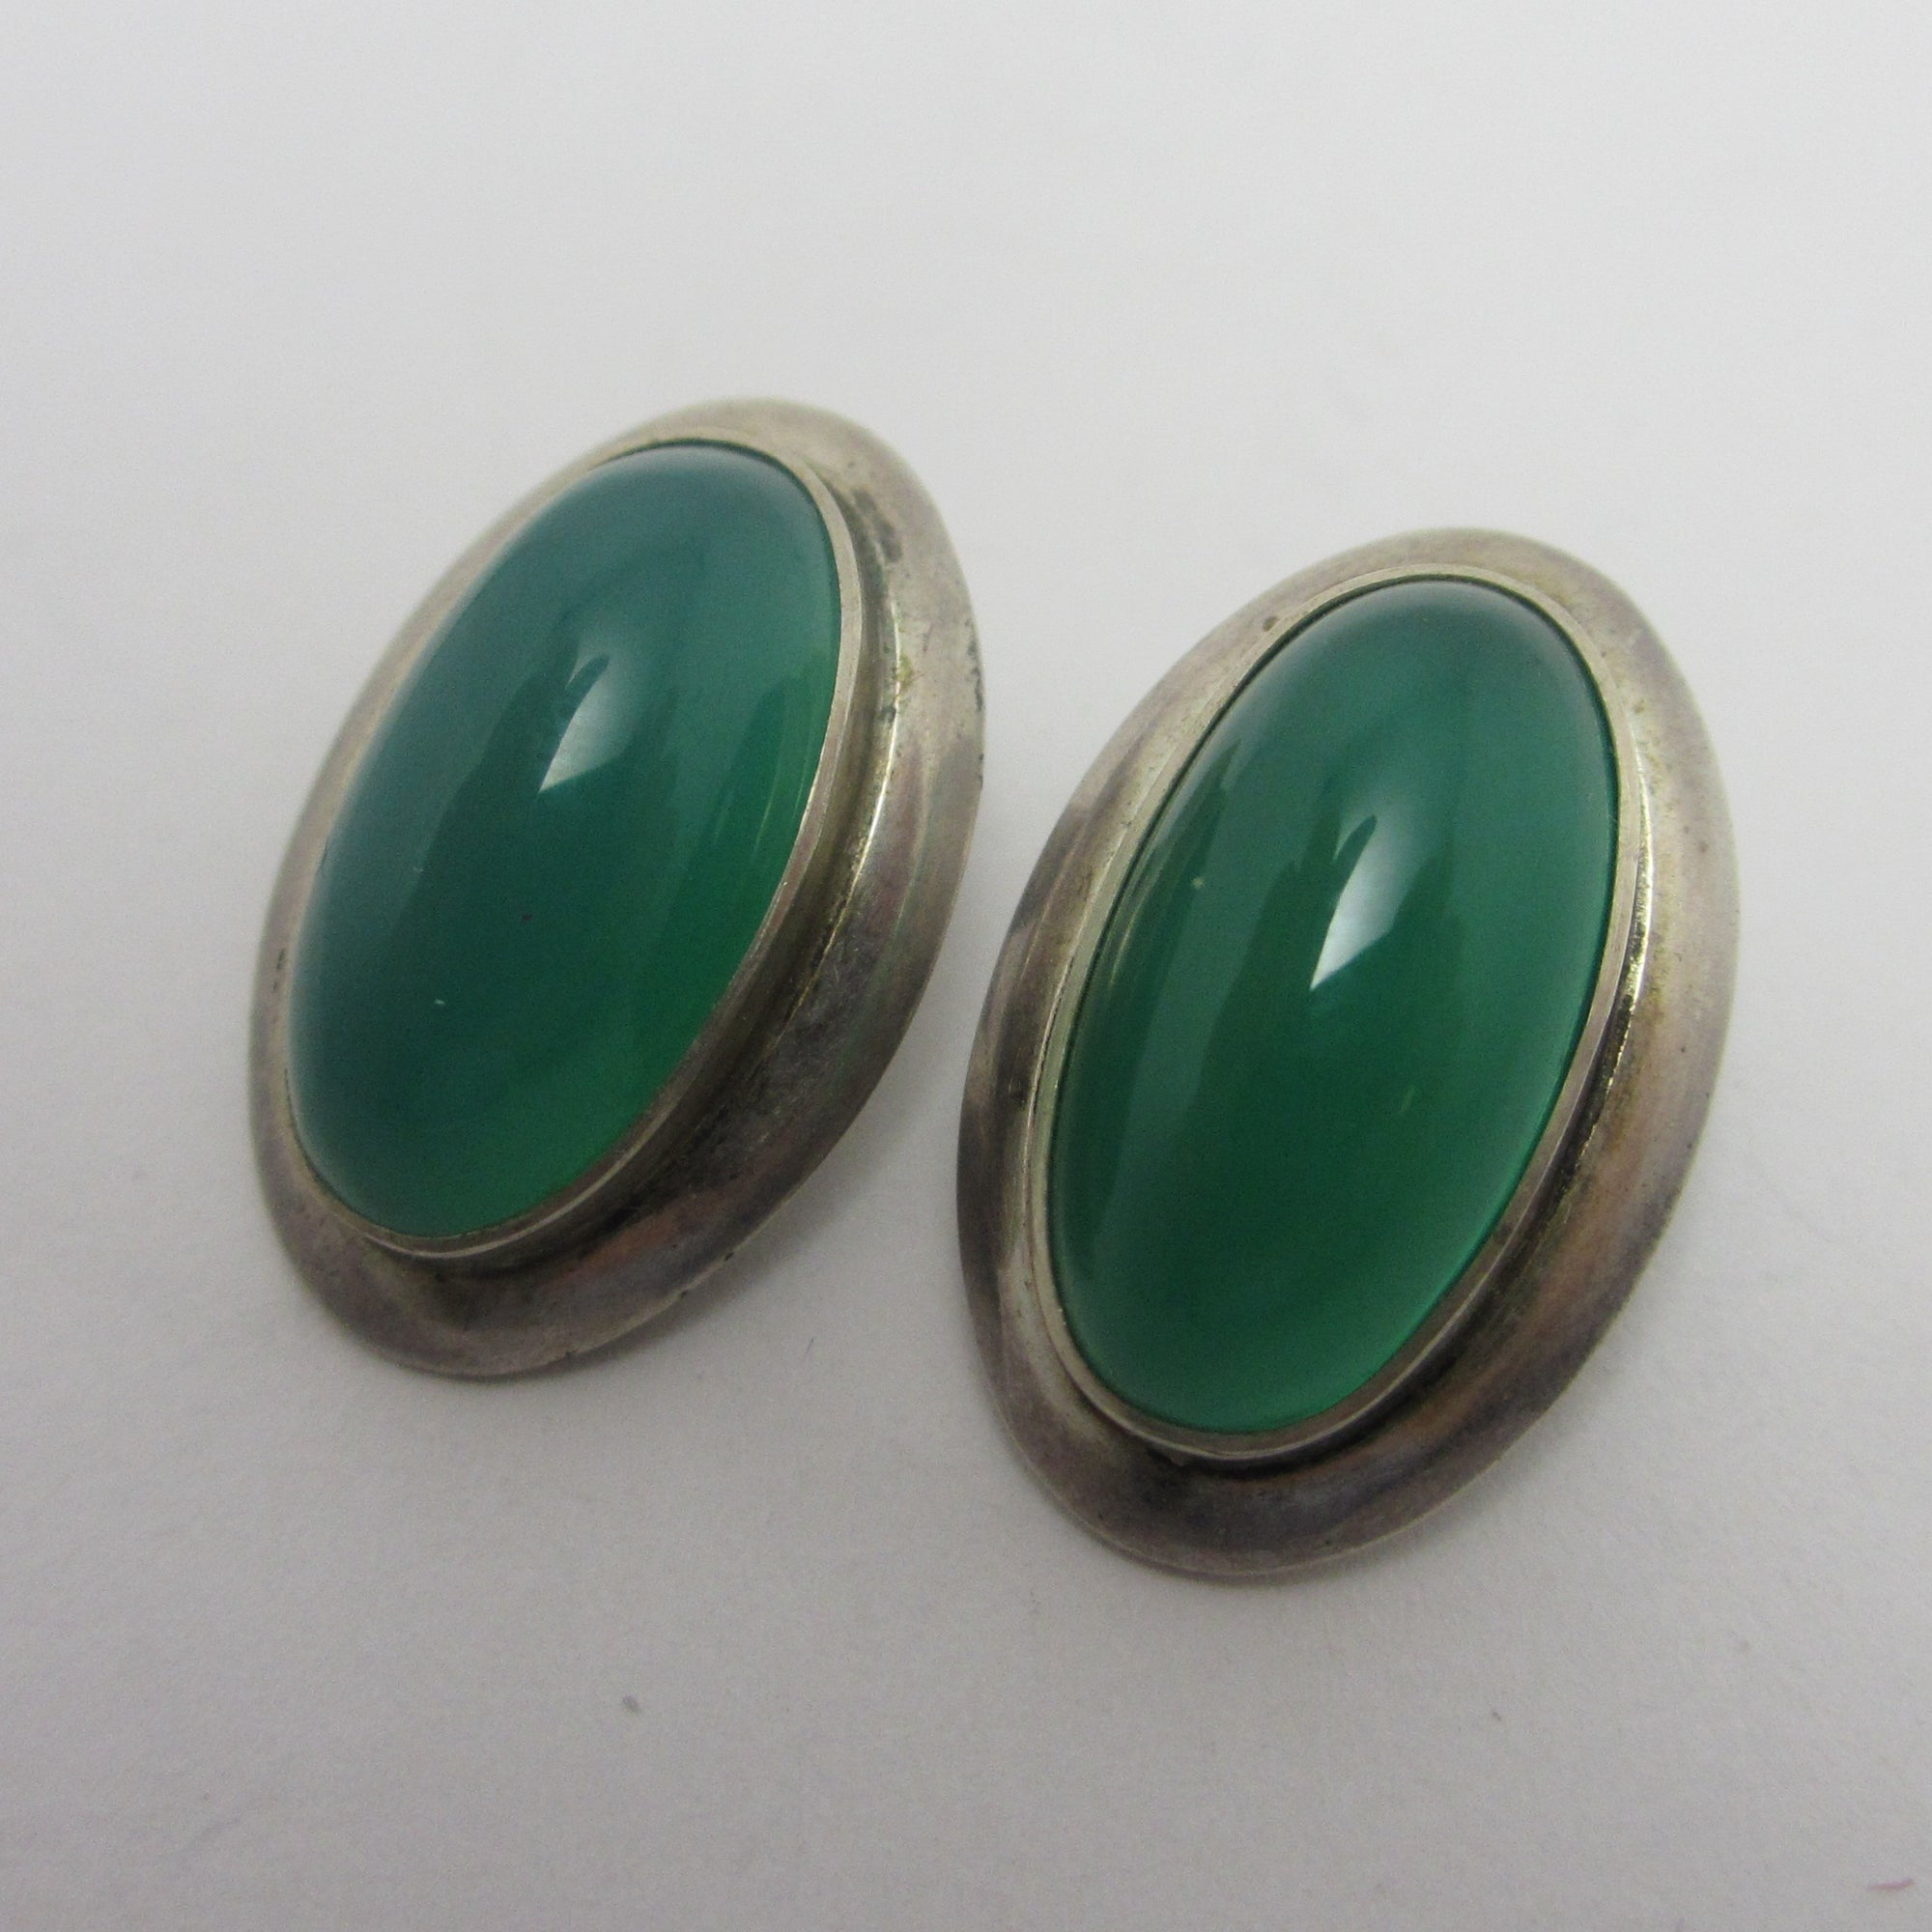 Cabochon Green Chrysoprase Sterling Silver Lever Back Earrings Vintage c1970